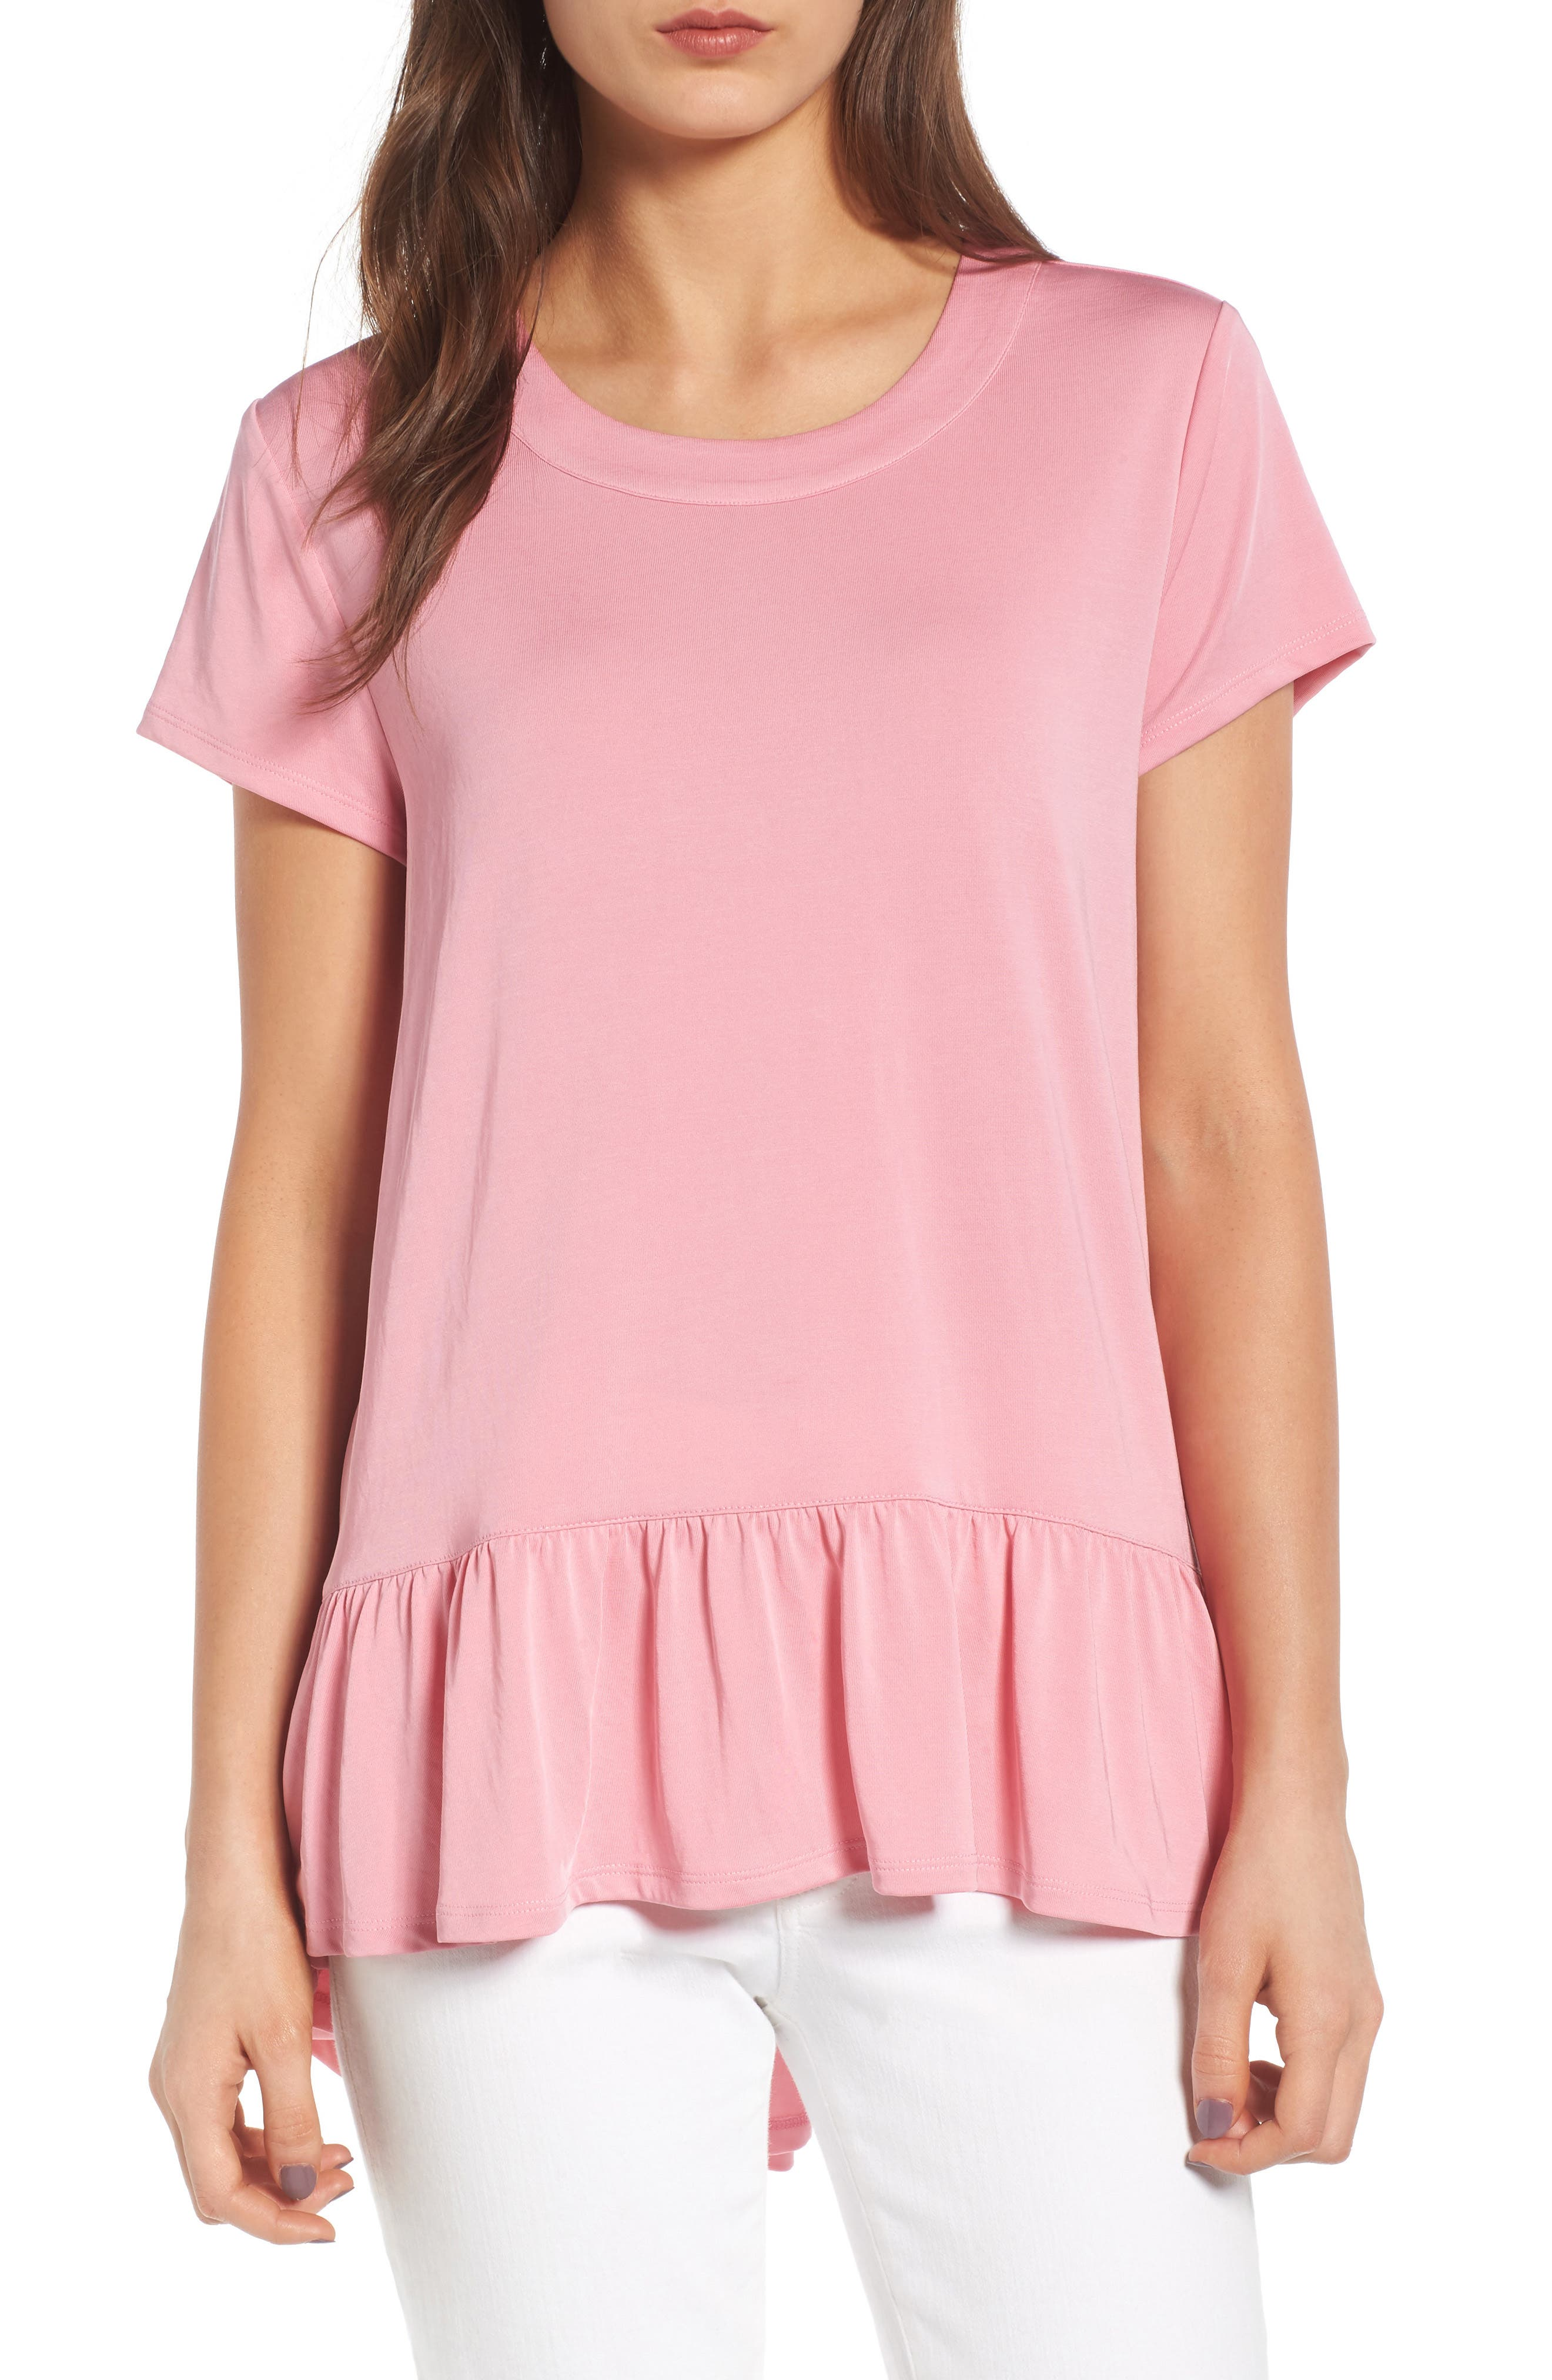 Alternate Image 1 Selected - Chelsea28 Ruffle Hem Tee